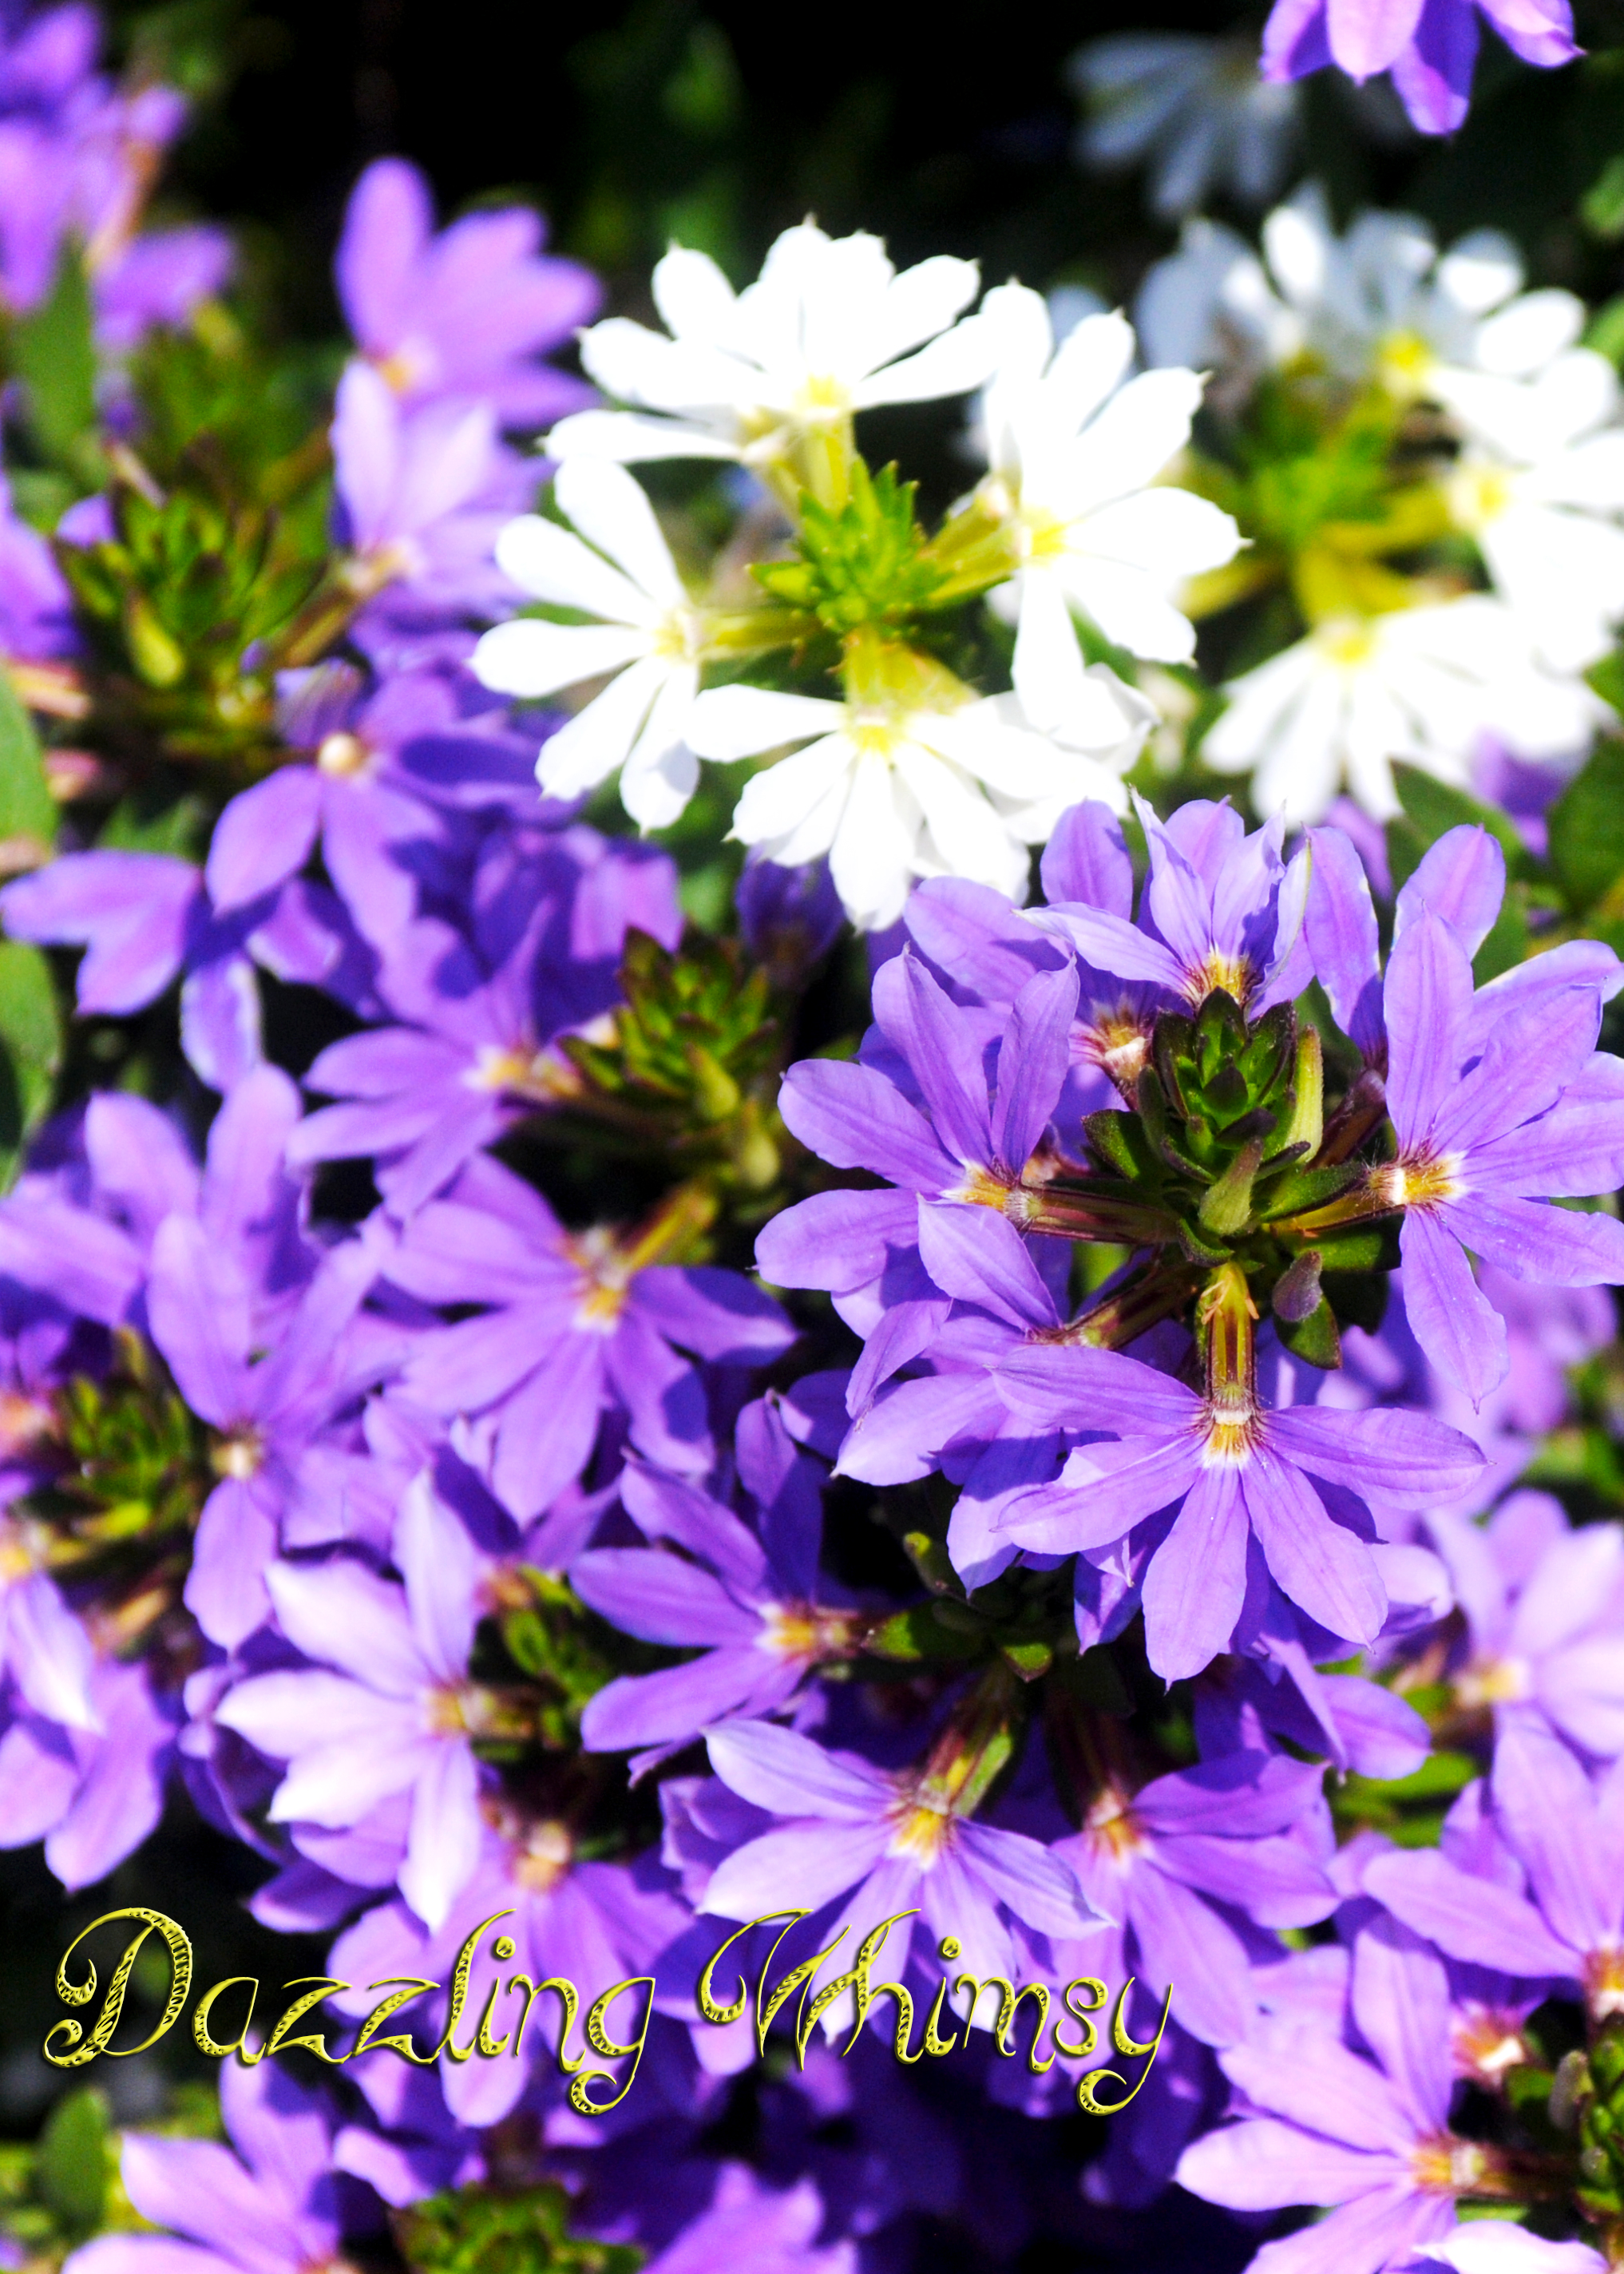 Naupaka dazzling whimsy common names for scaevola species include scaevolas fan flowers half flowers izmirmasajfo